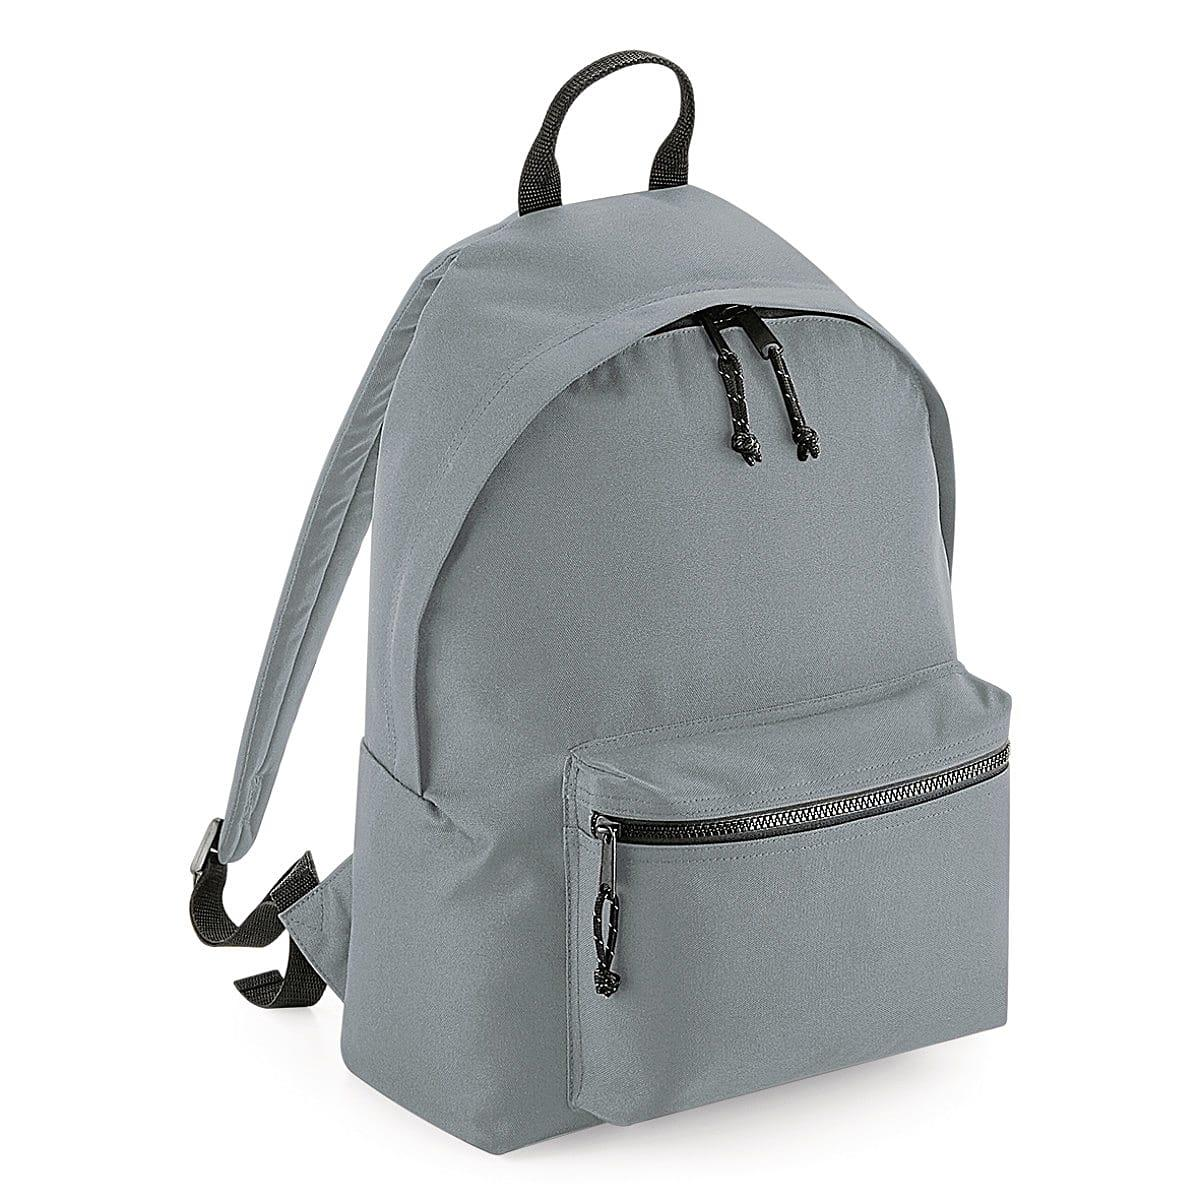 Bagbase Recycled Backpack in Pure Grey (Product Code: BG285)